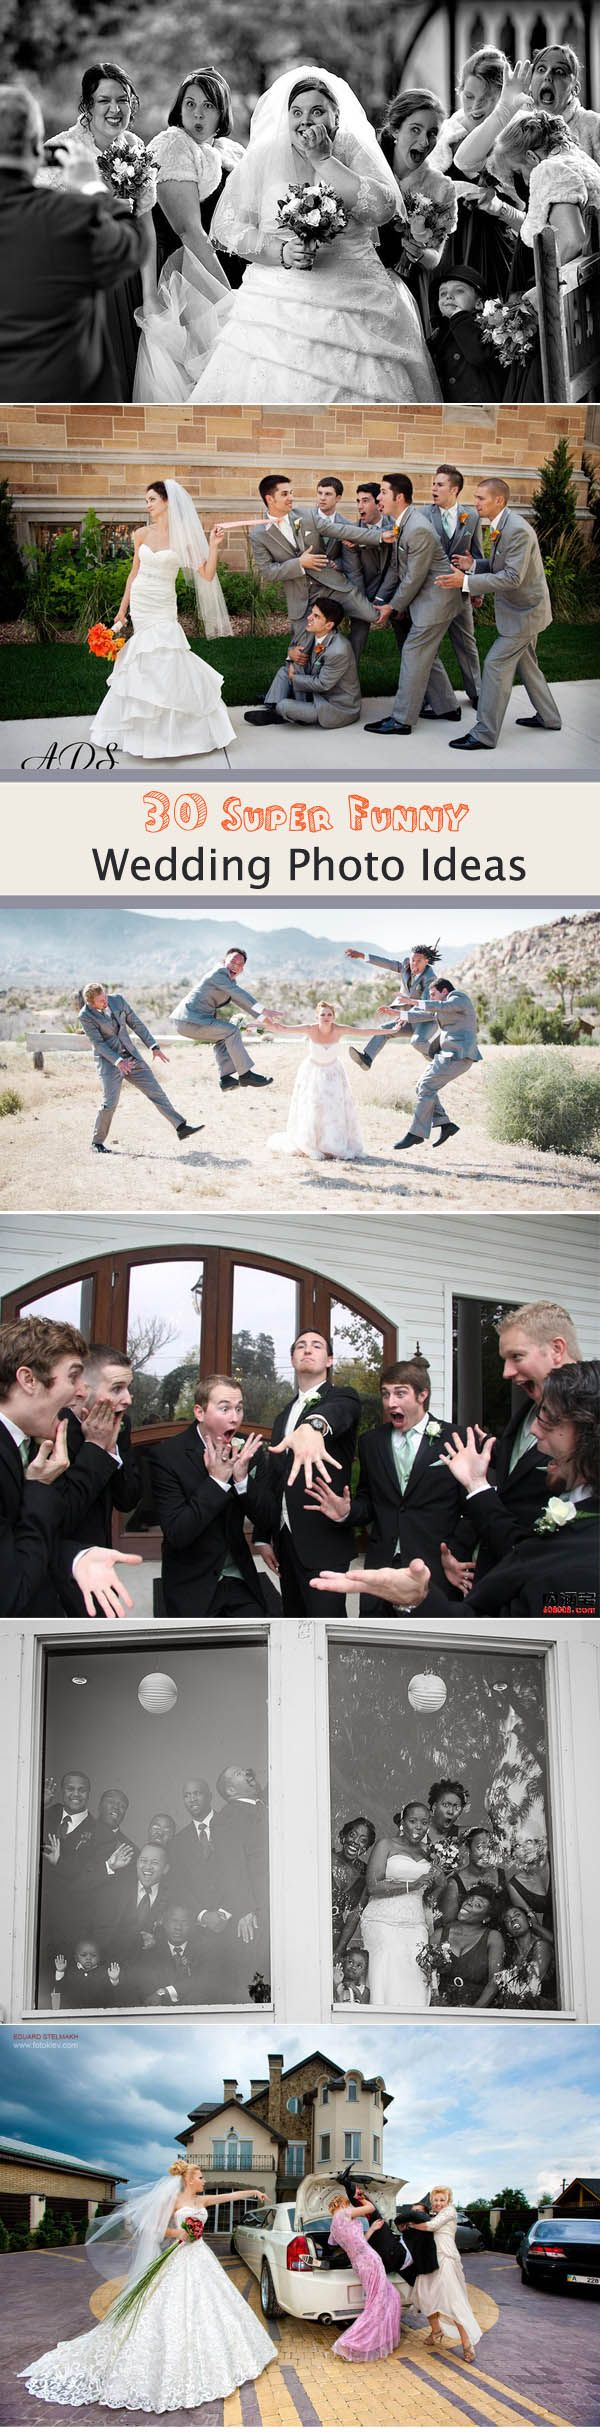 30 super funny wedding photo ideas